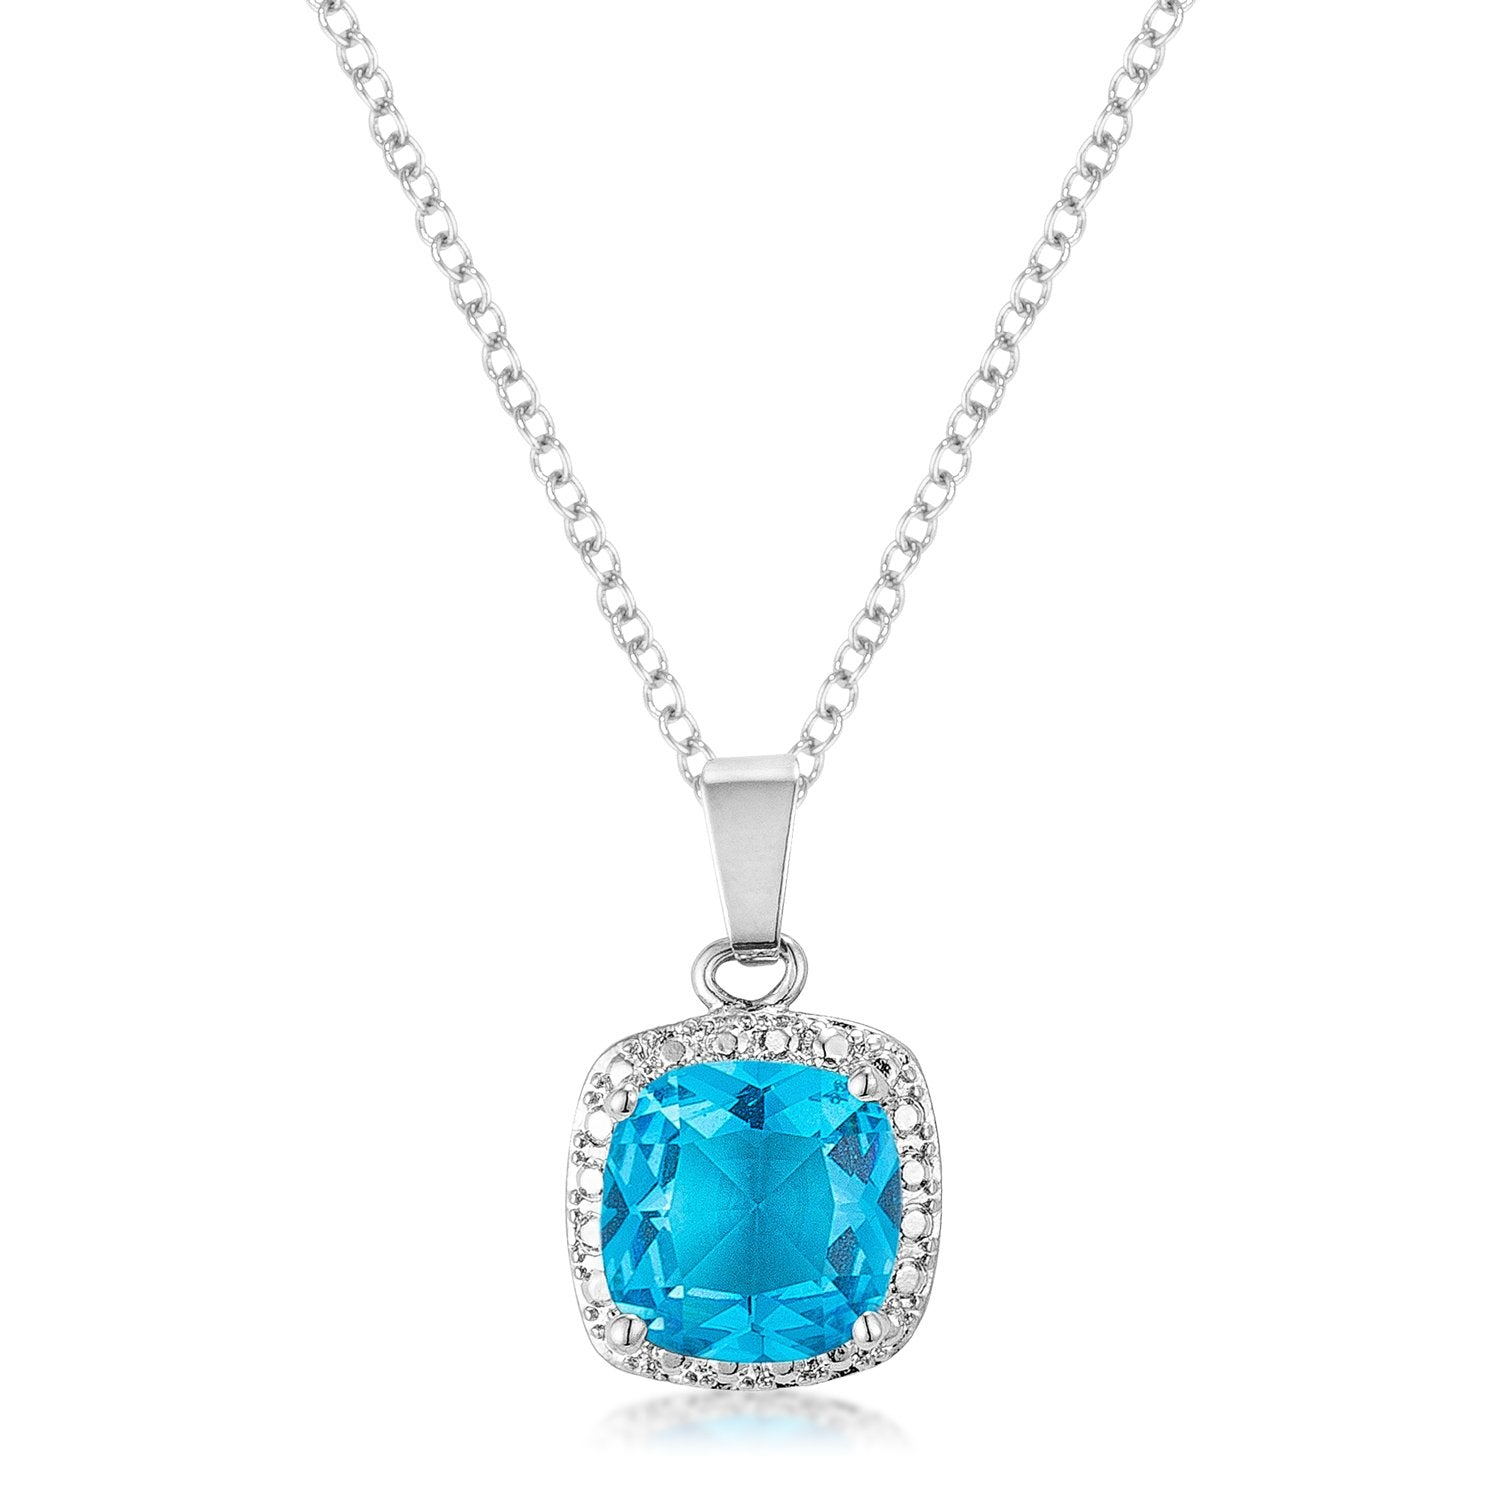 jewels fall of limited us report blog in s carat images christies important diamond courtesy a cut cushion set auction pendant christie en